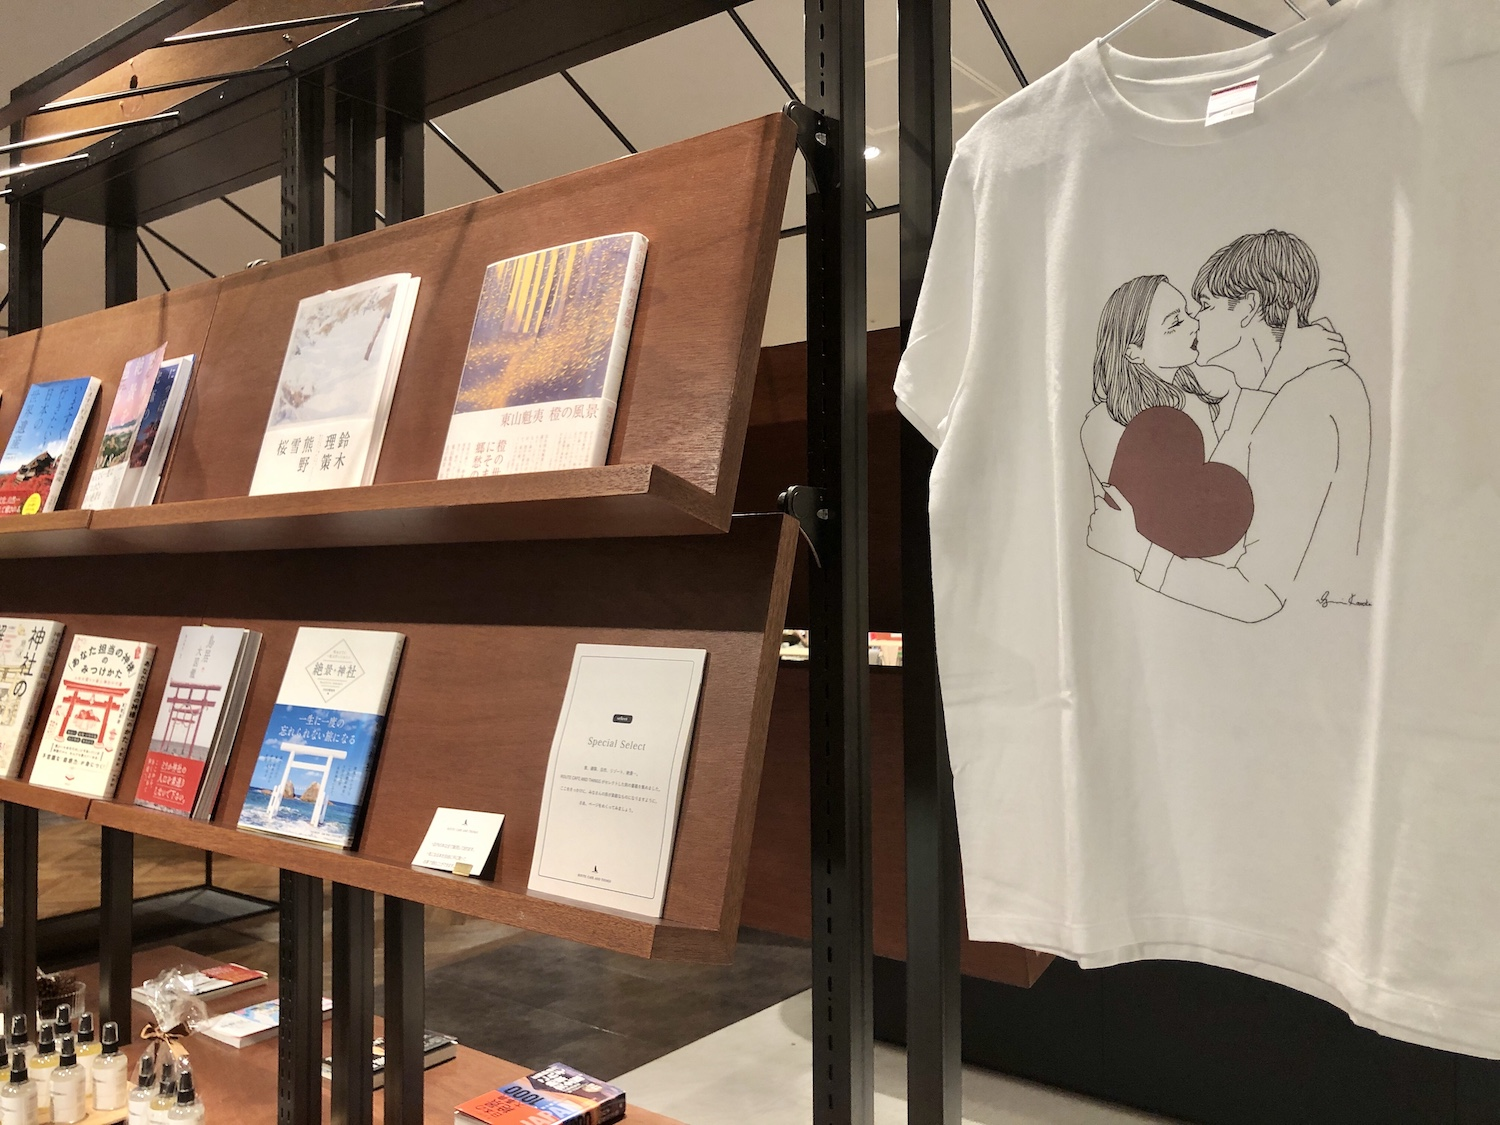 ROUTE CAFE AND THINGS(東京・丸ビル4F)でマルタフェア